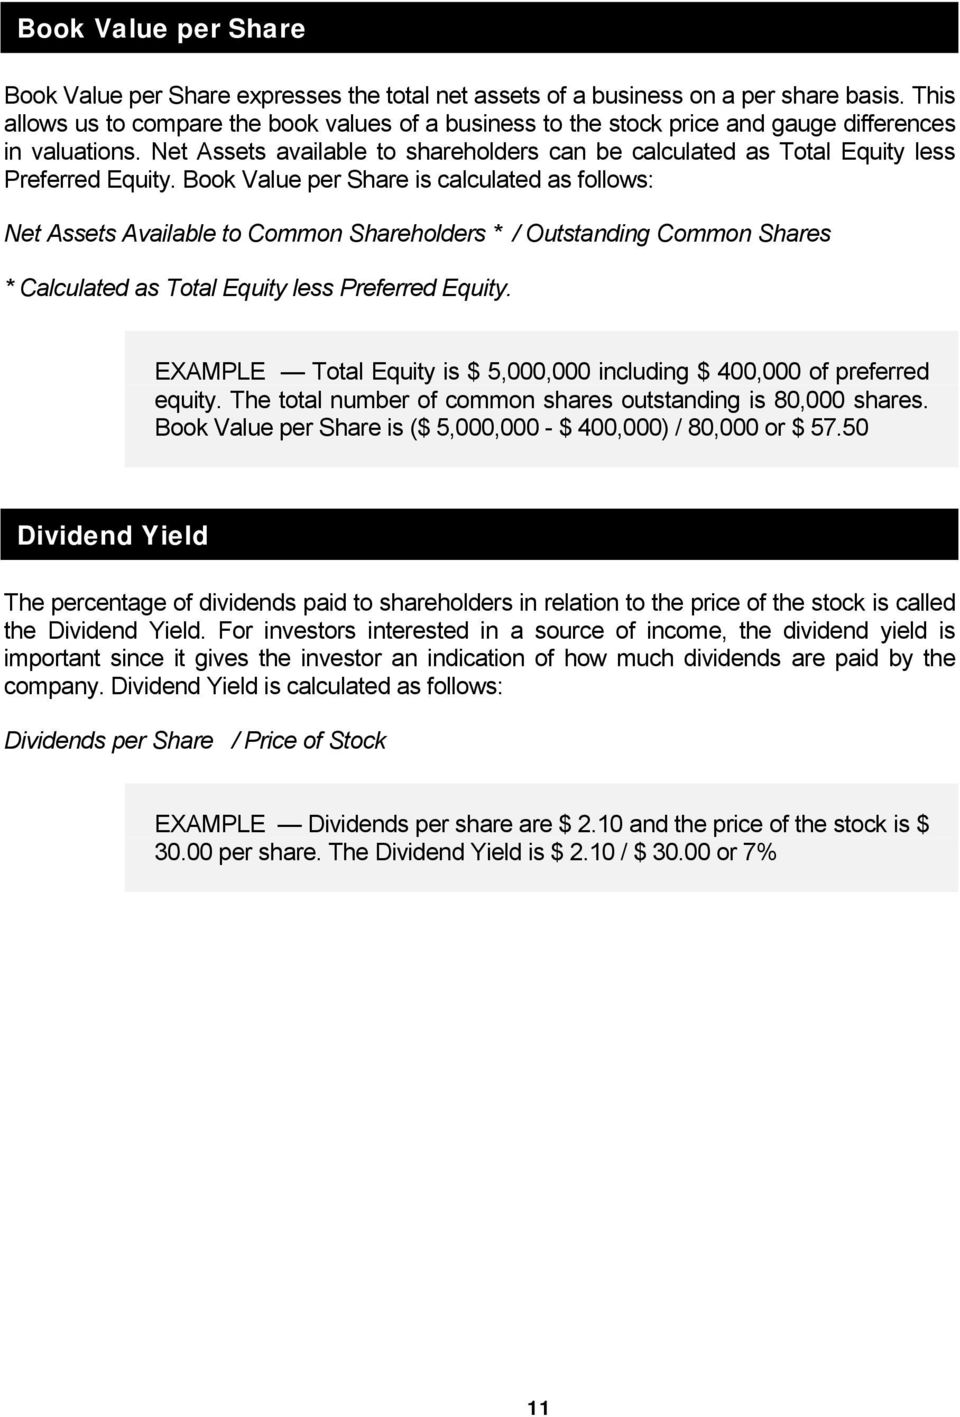 Net Assets available to shareholders can be calculated as Total Equity less Preferred Equity.